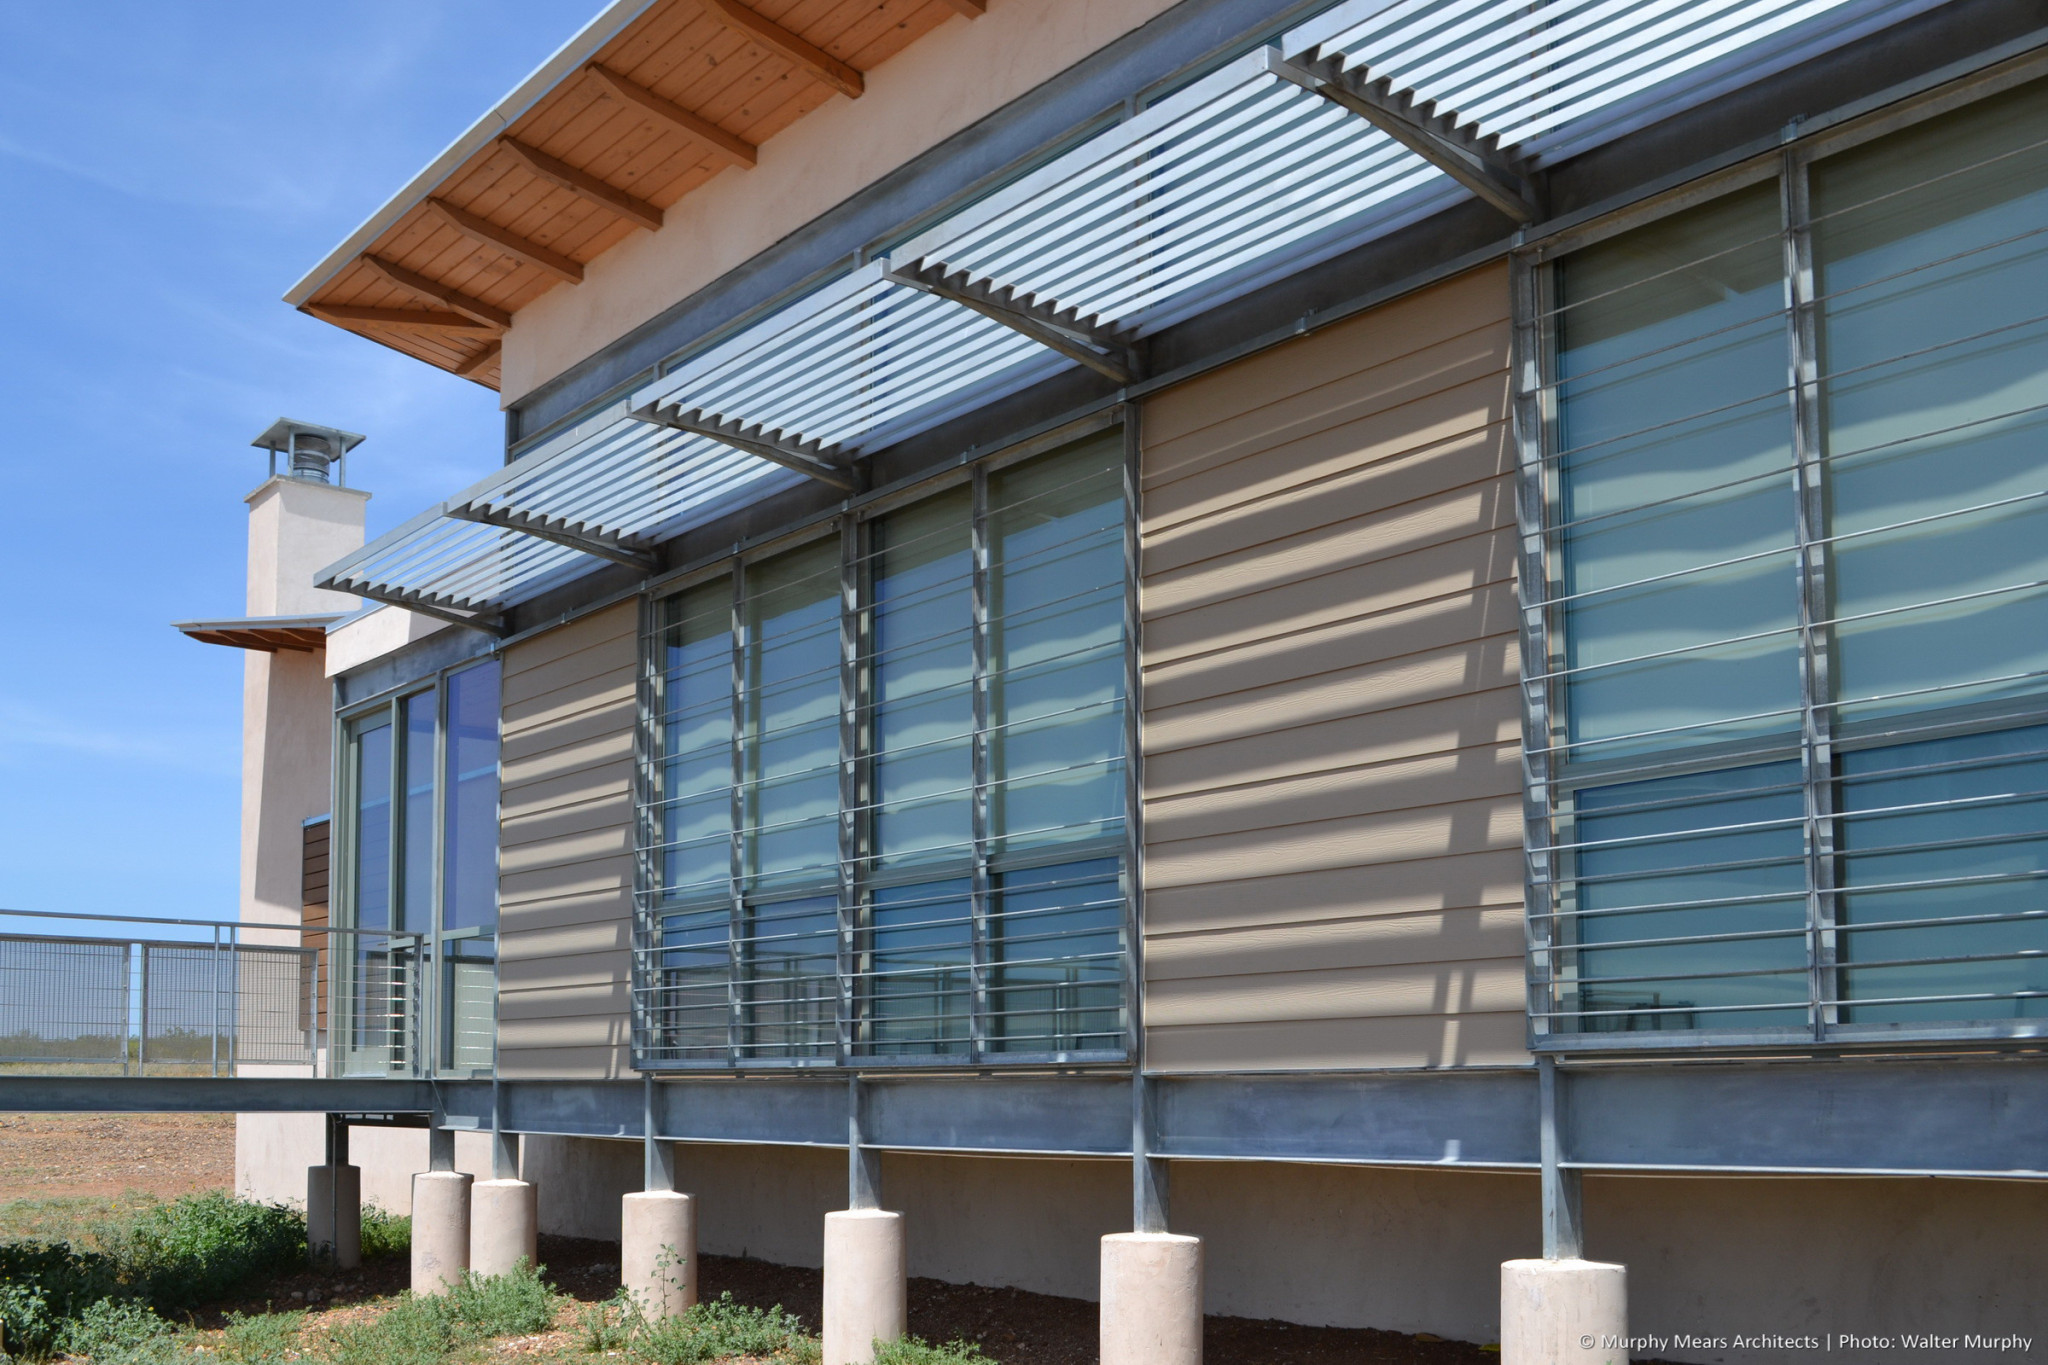 galvanized steel fin awning and wood roof casting shadows on window wall with lapped hardie siding accent panels